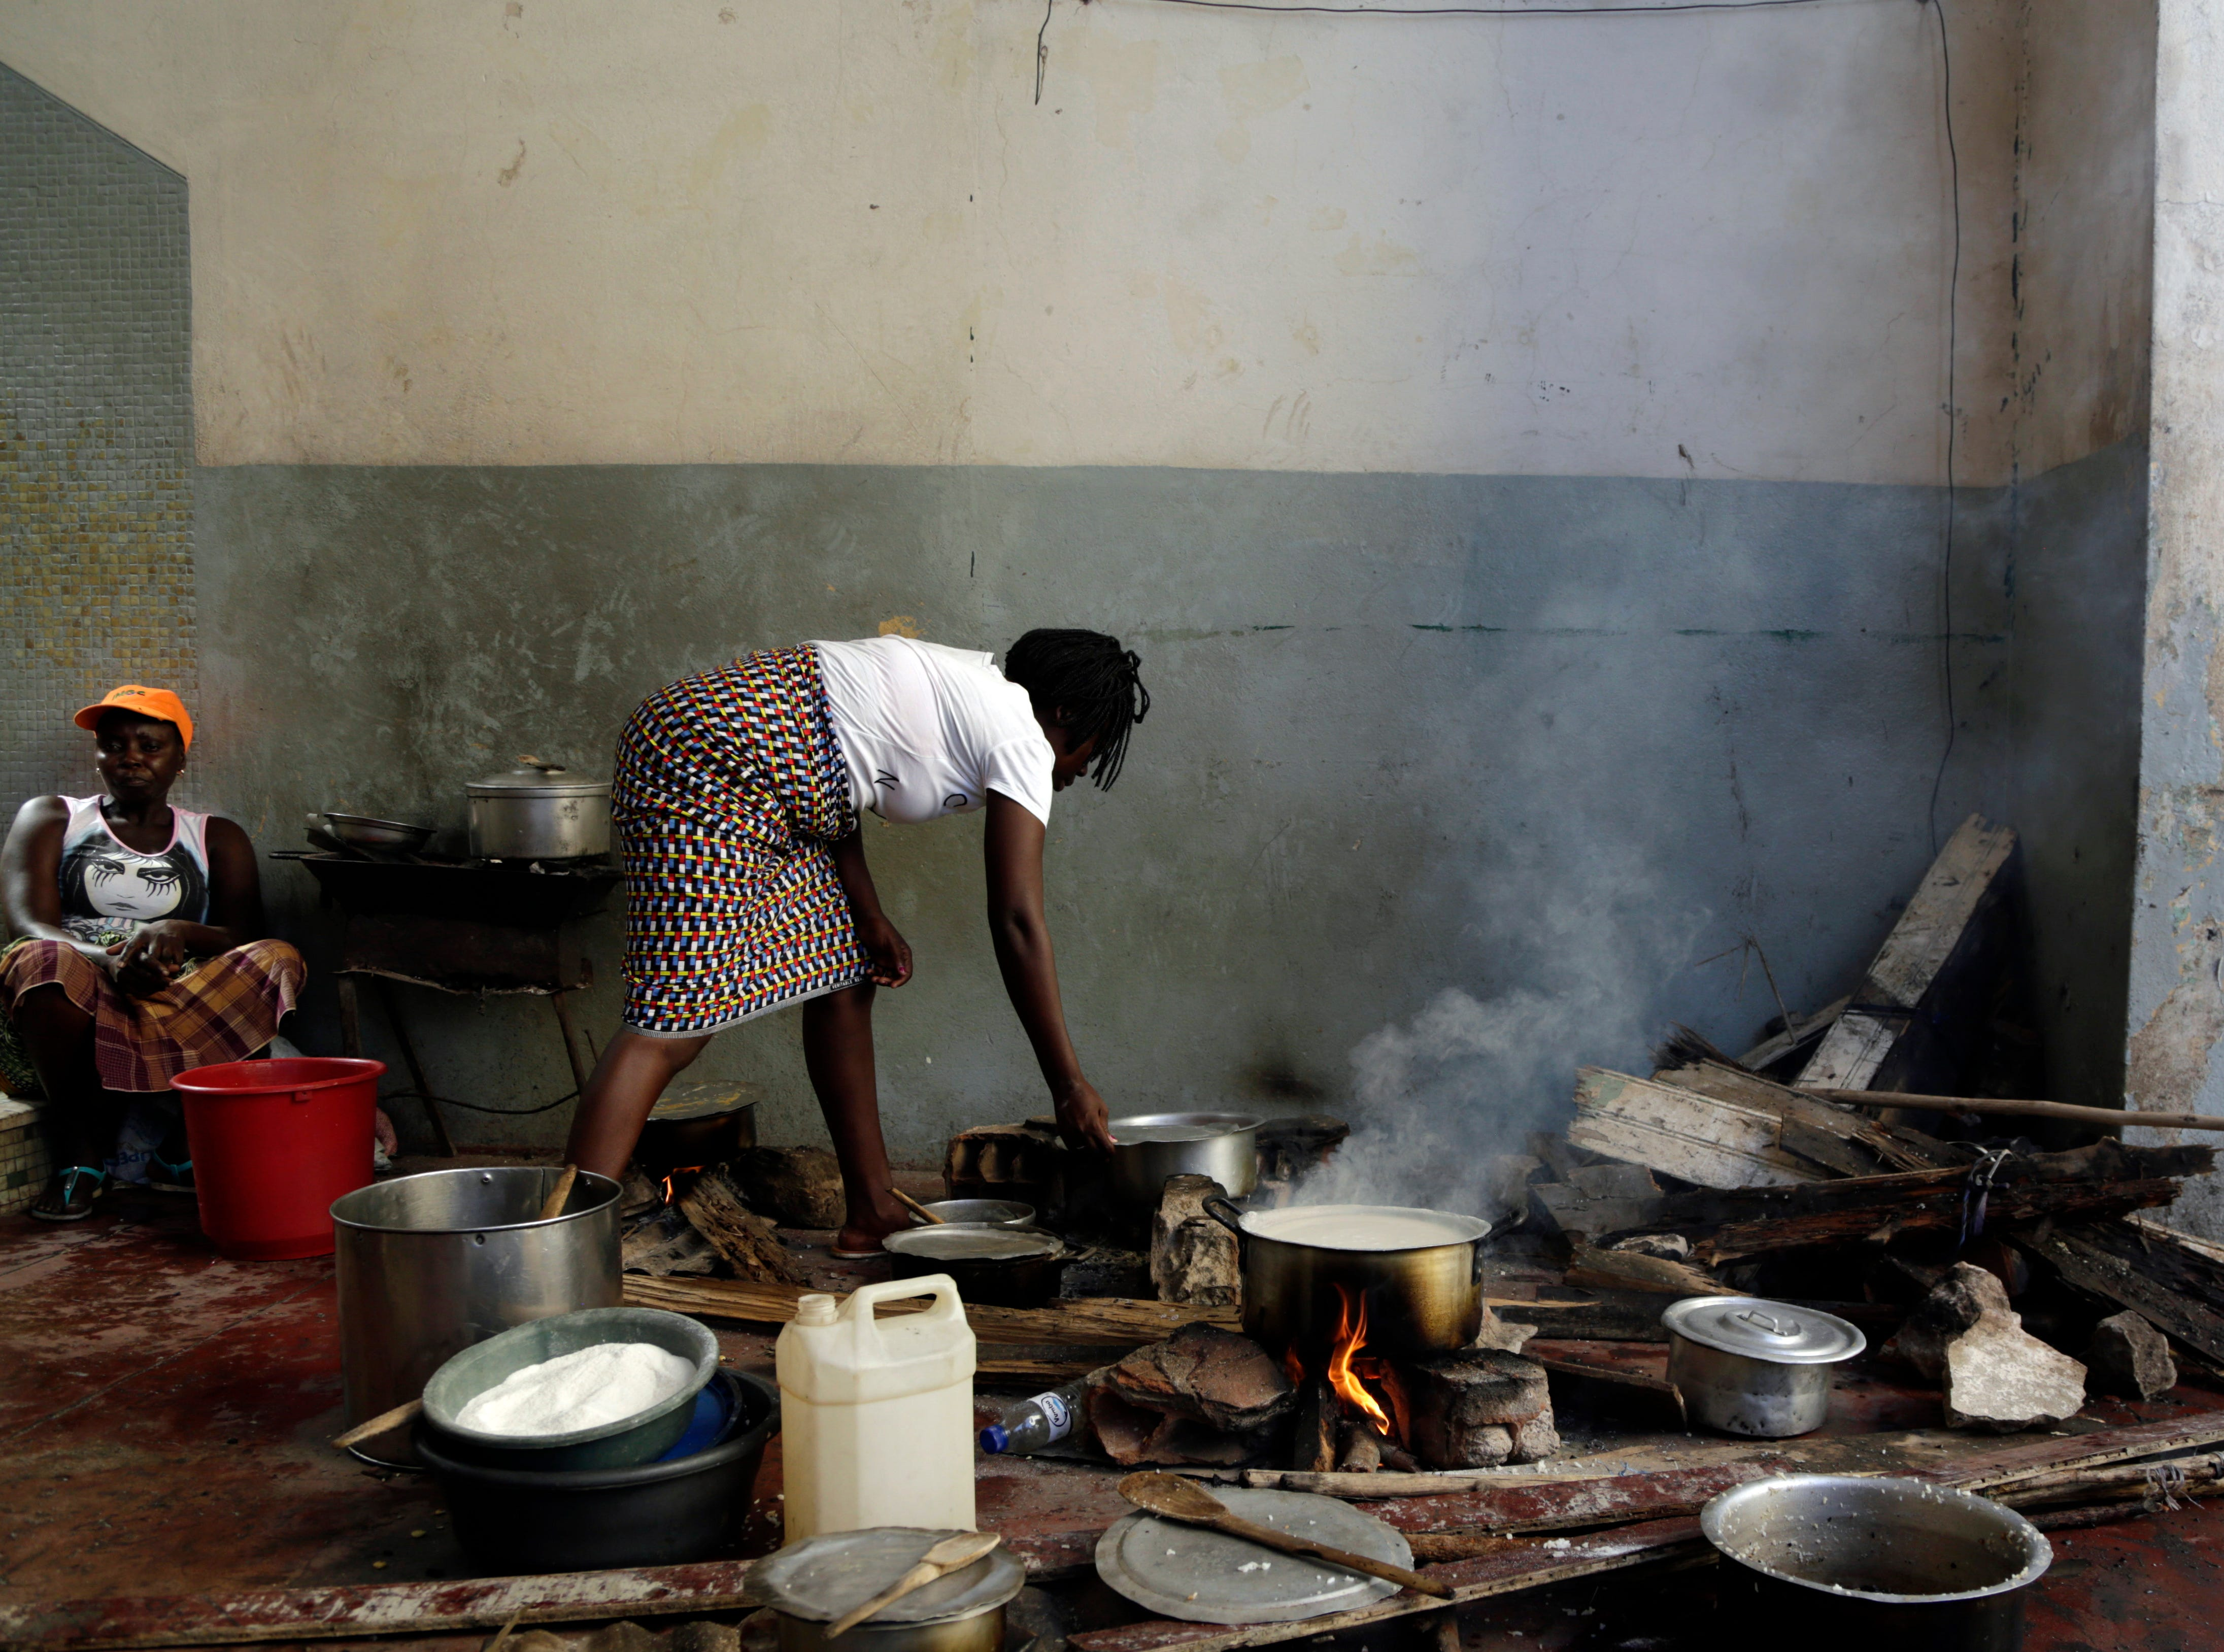 A woman cooks on the floor at a displacement centre in Beira, Mozambique, Friday, March 22, 2019.